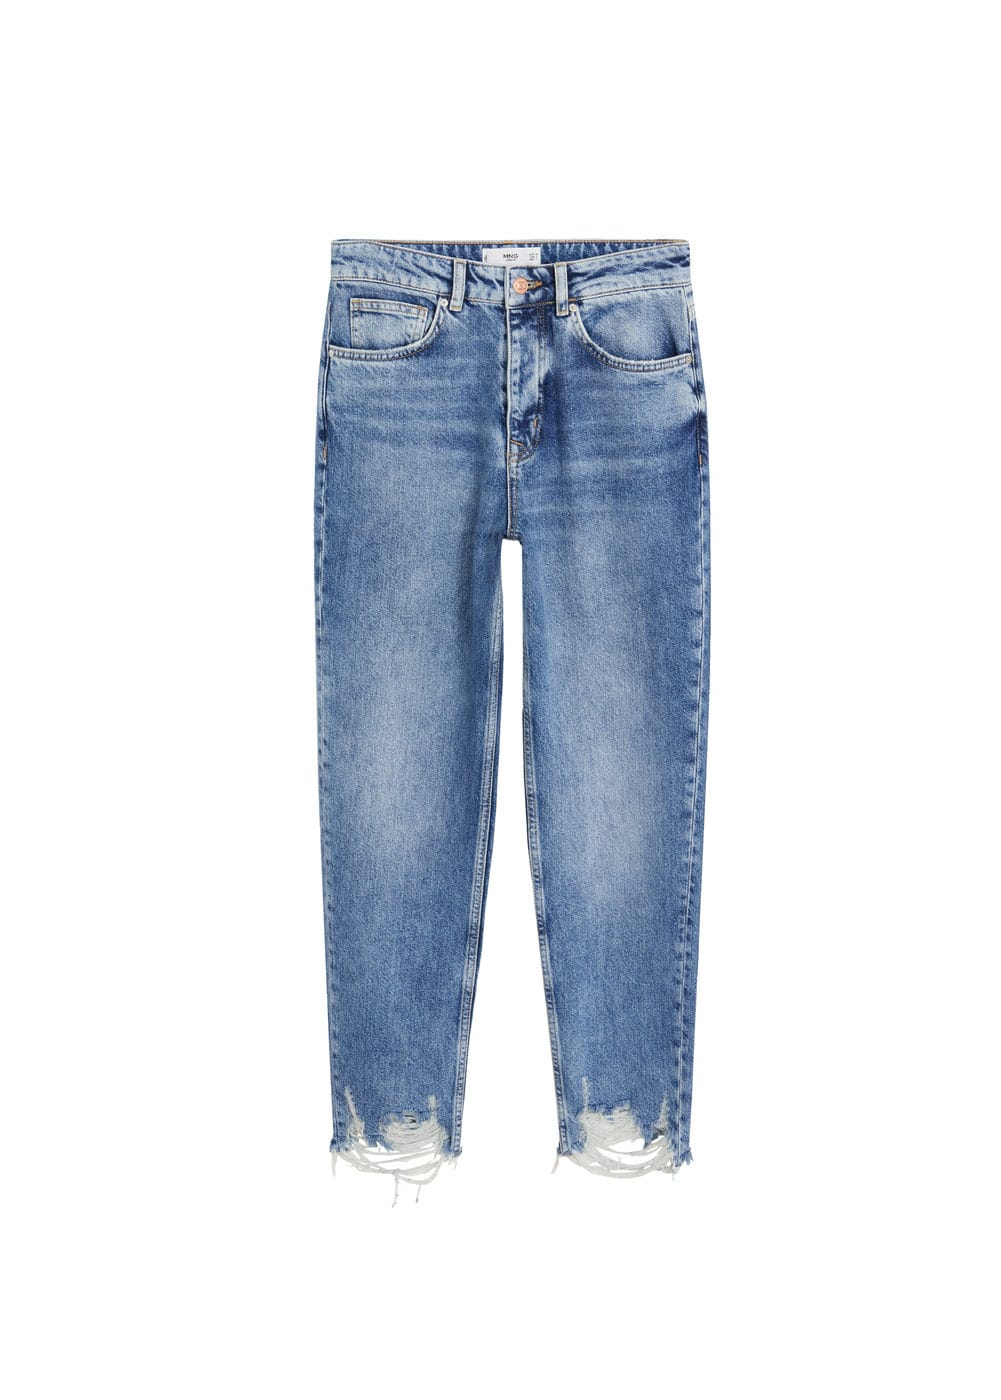 m-brokens:jeans rotos relax